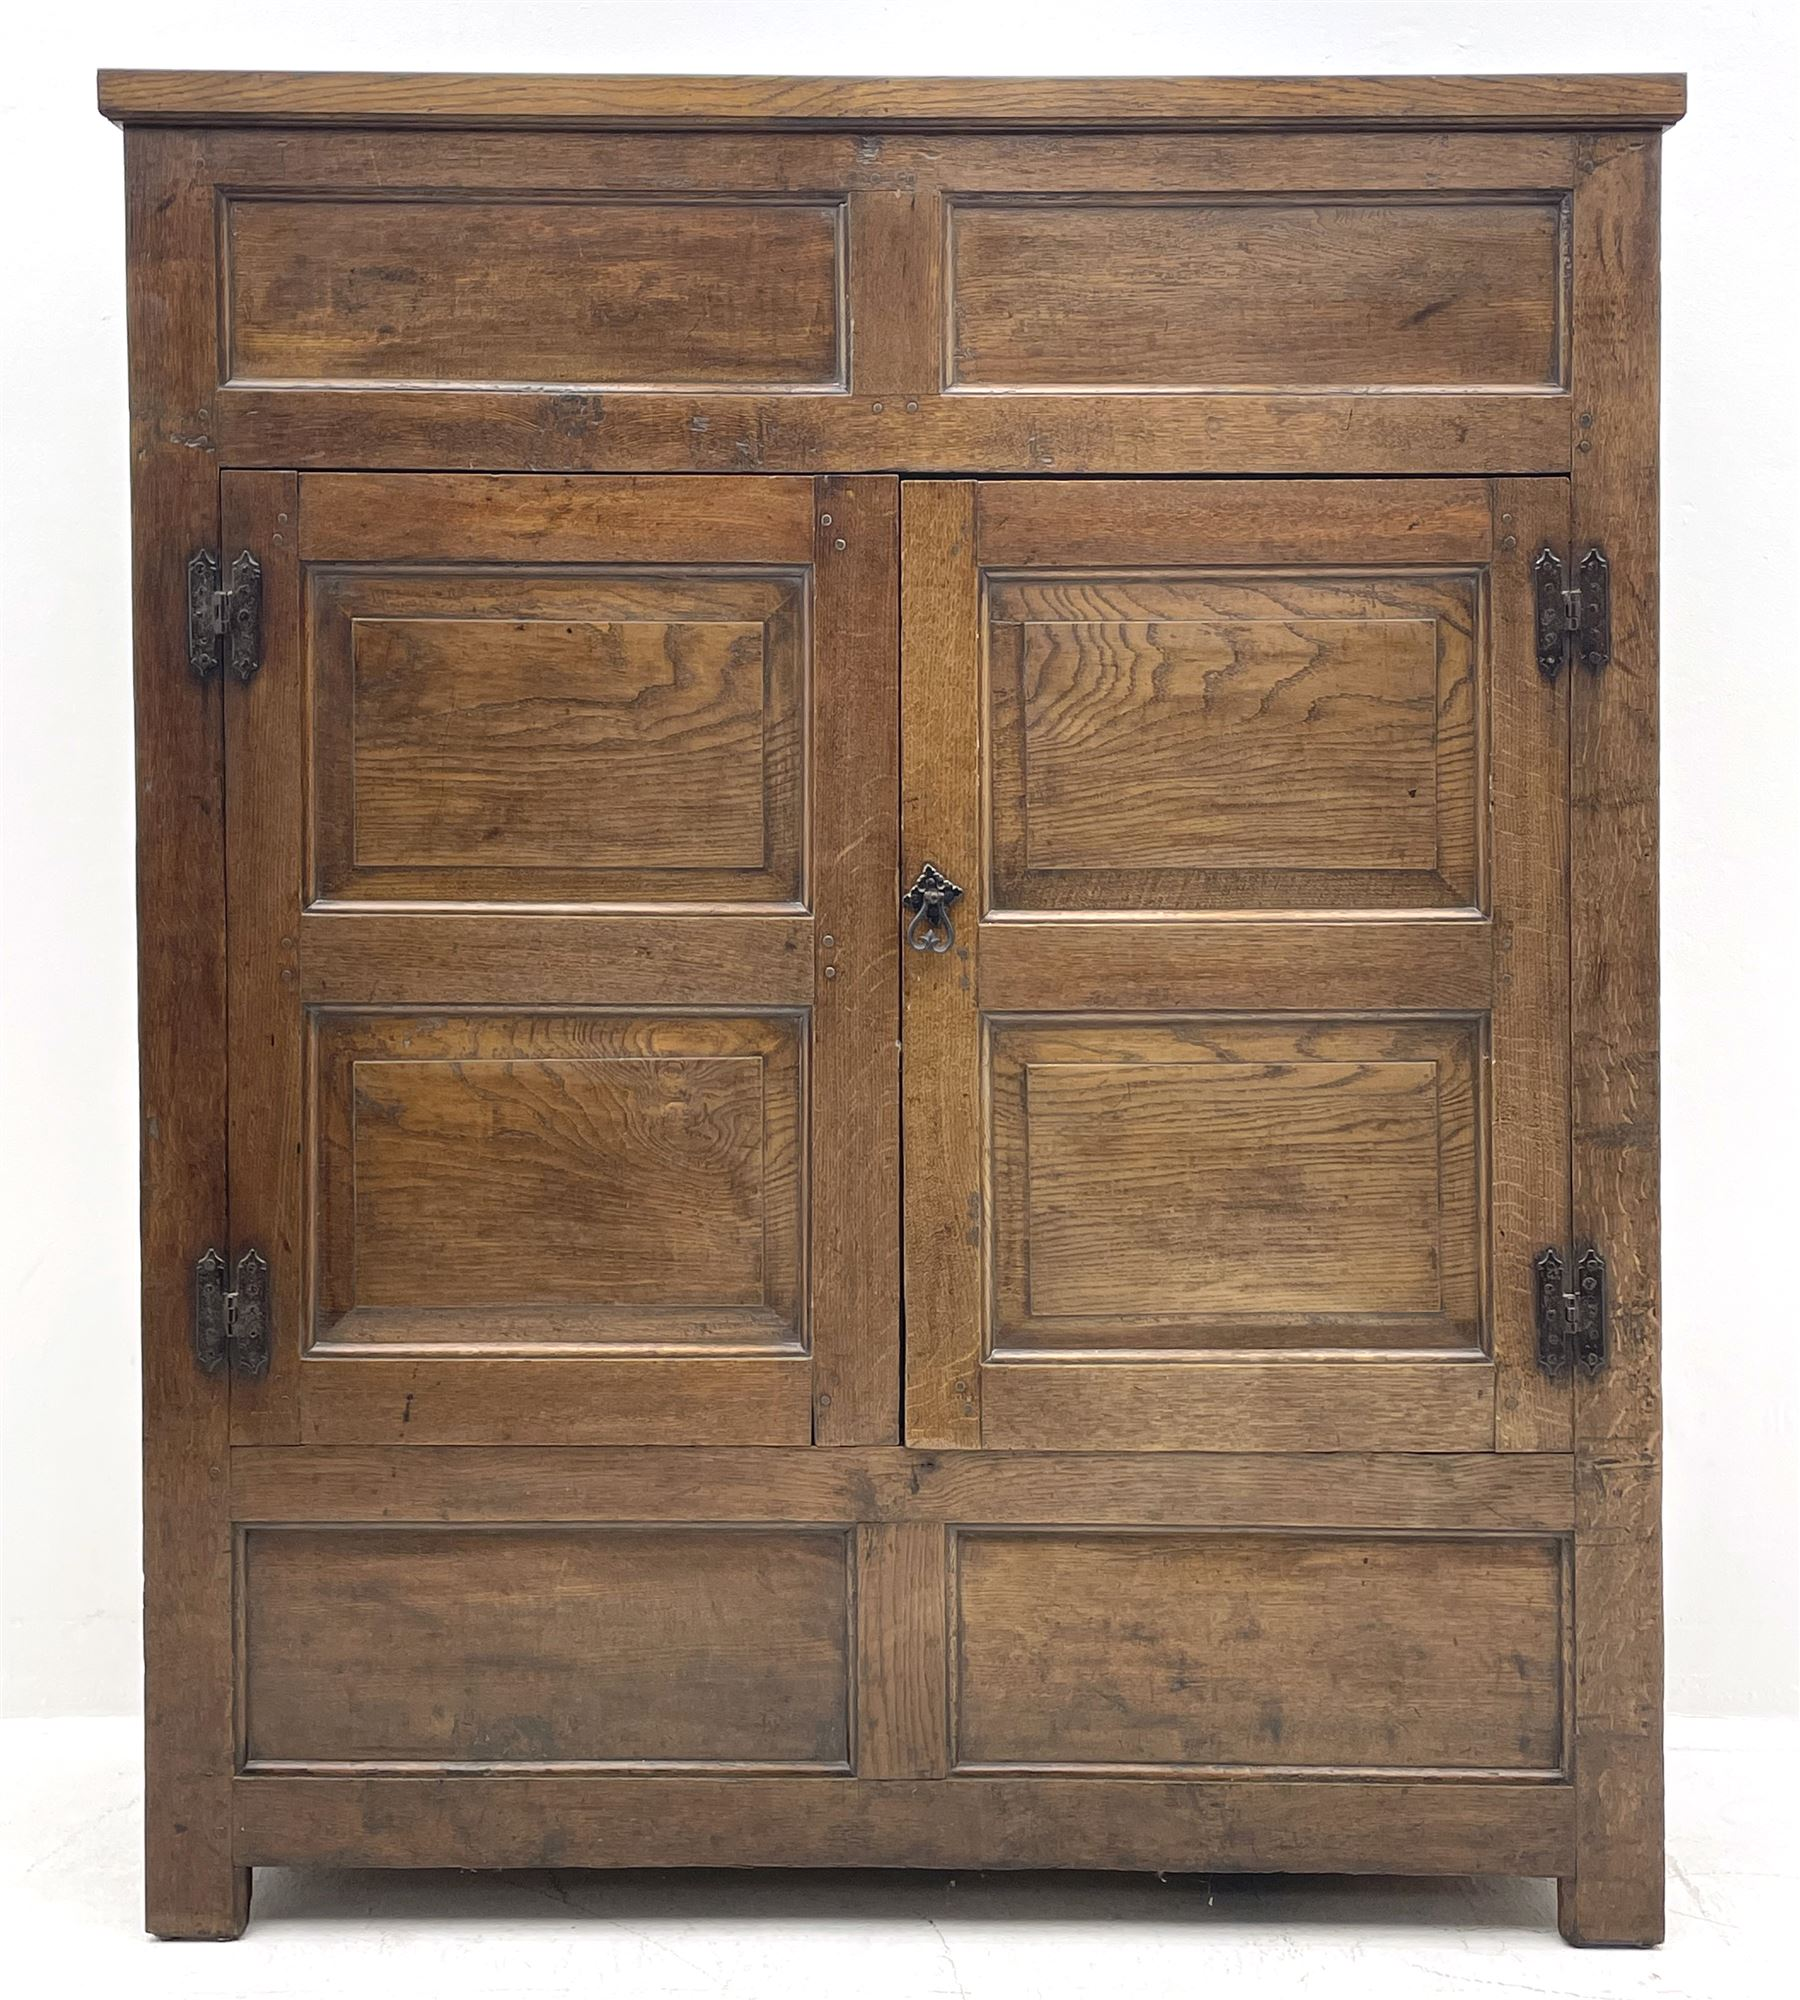 18th century and later oak livery cupboard - Image 2 of 8